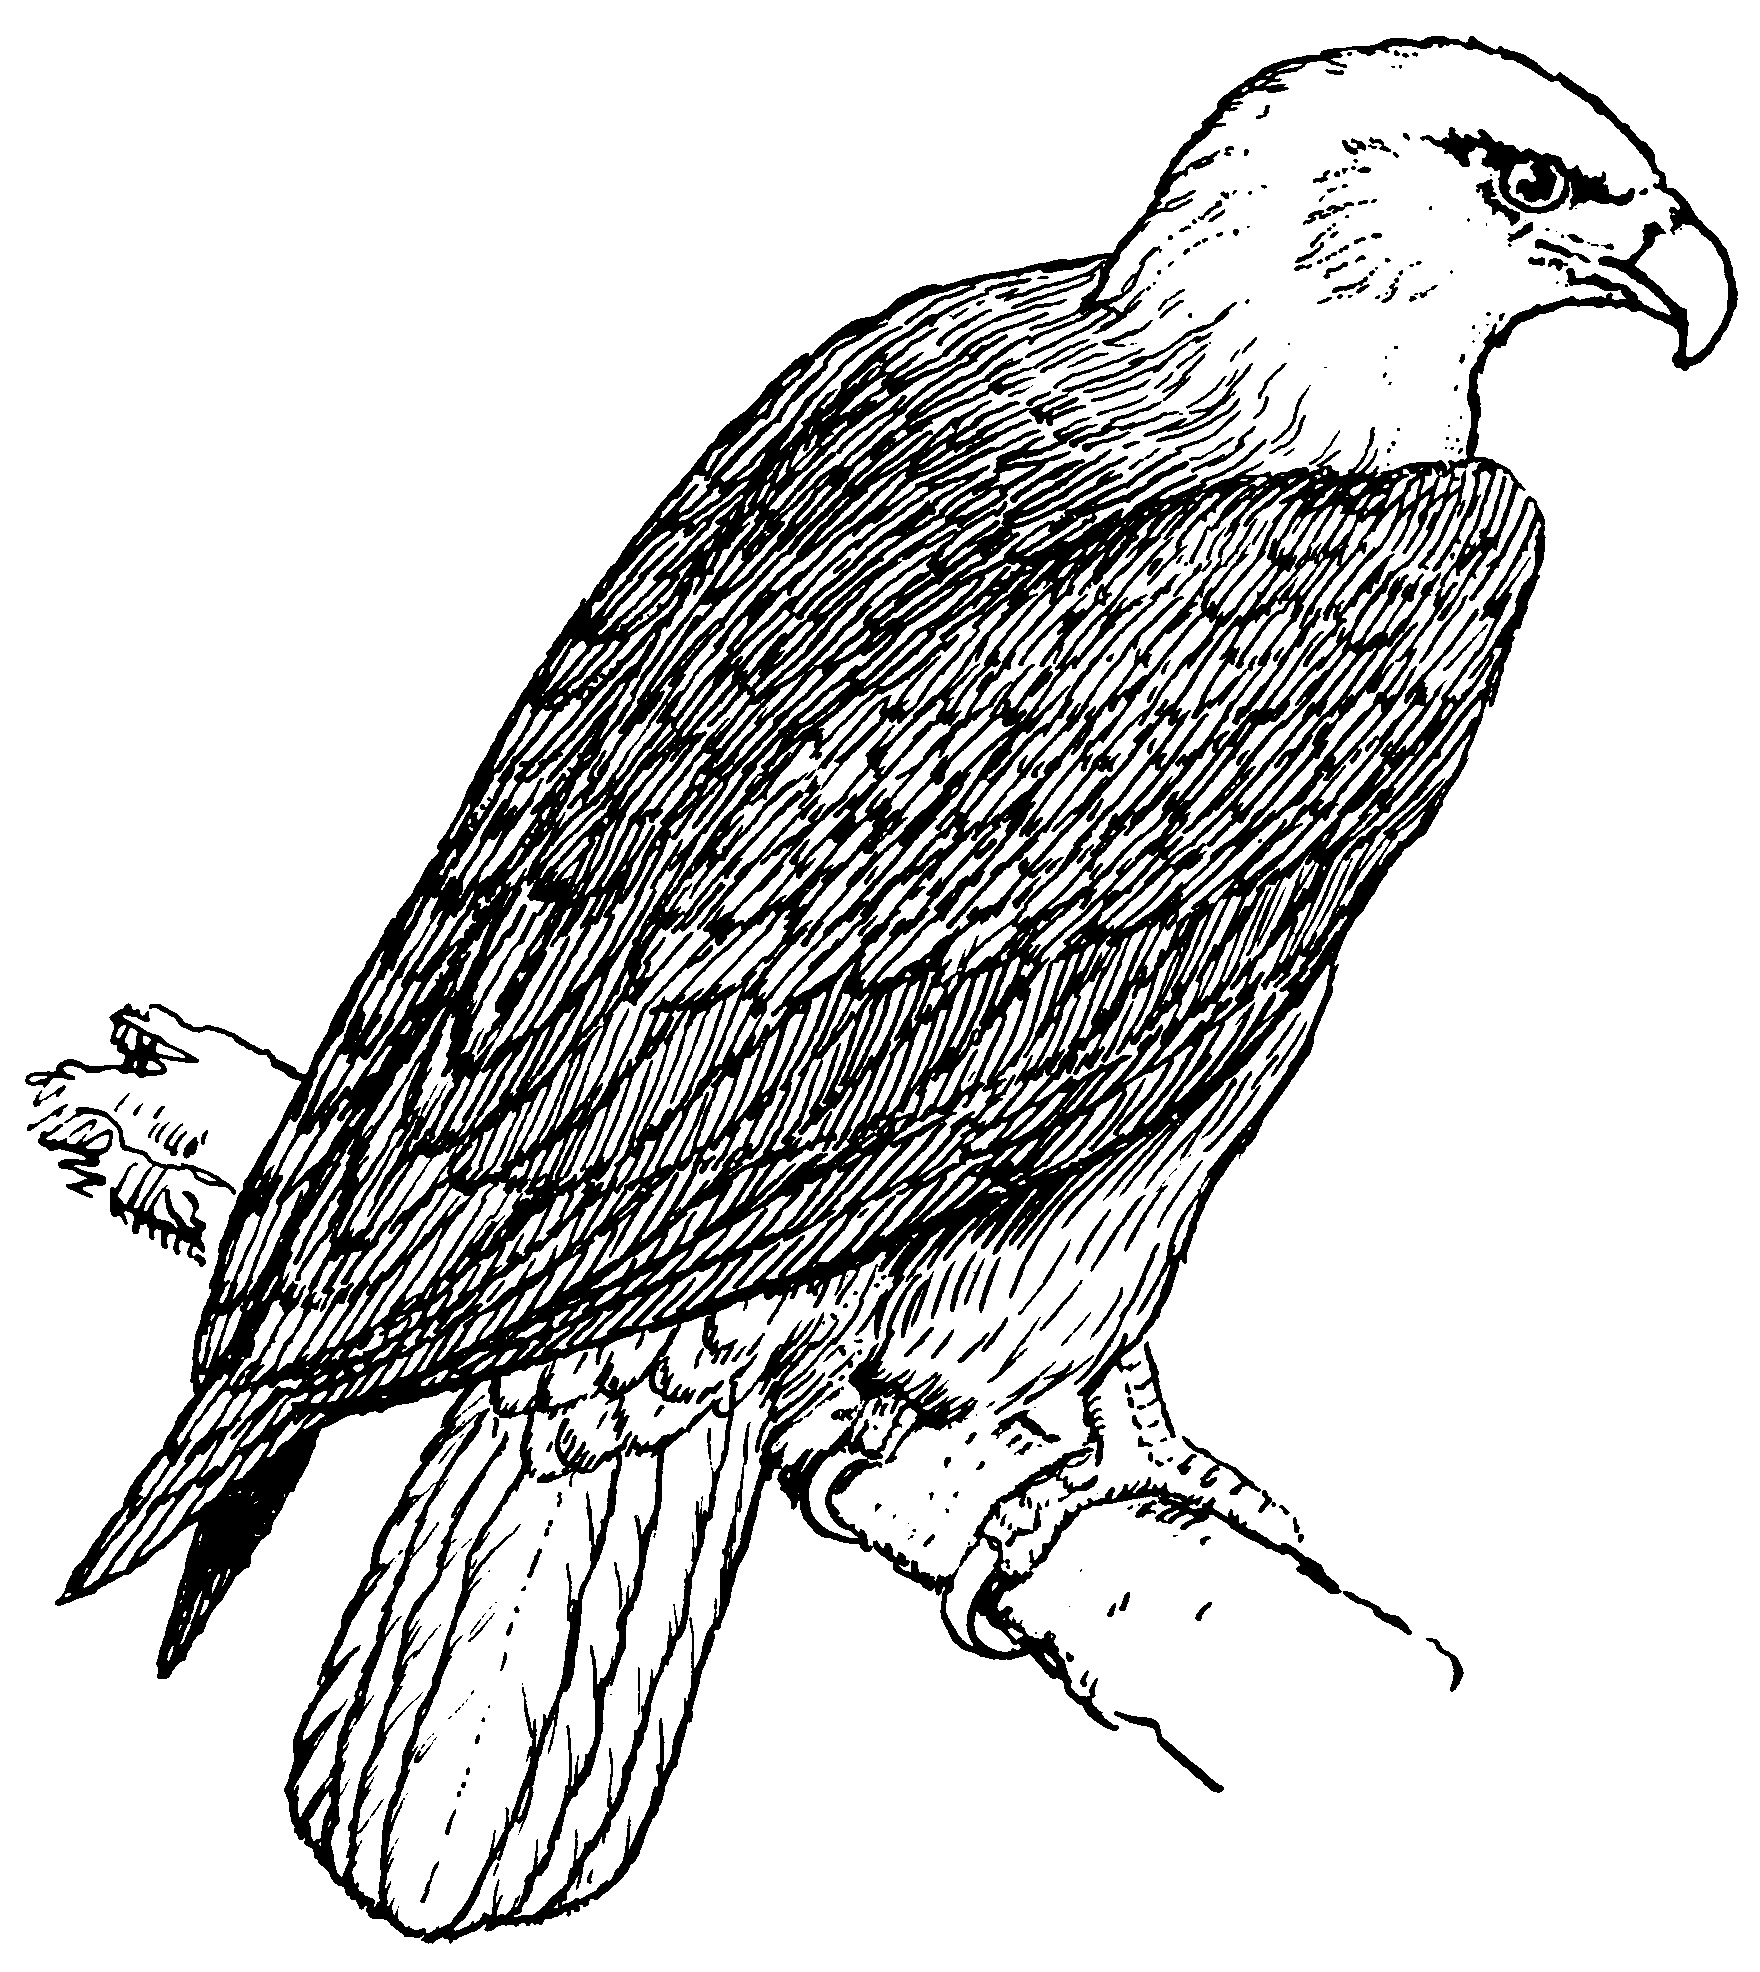 eagle color page free printable eagle coloring pages for kids eagle color page 1 1